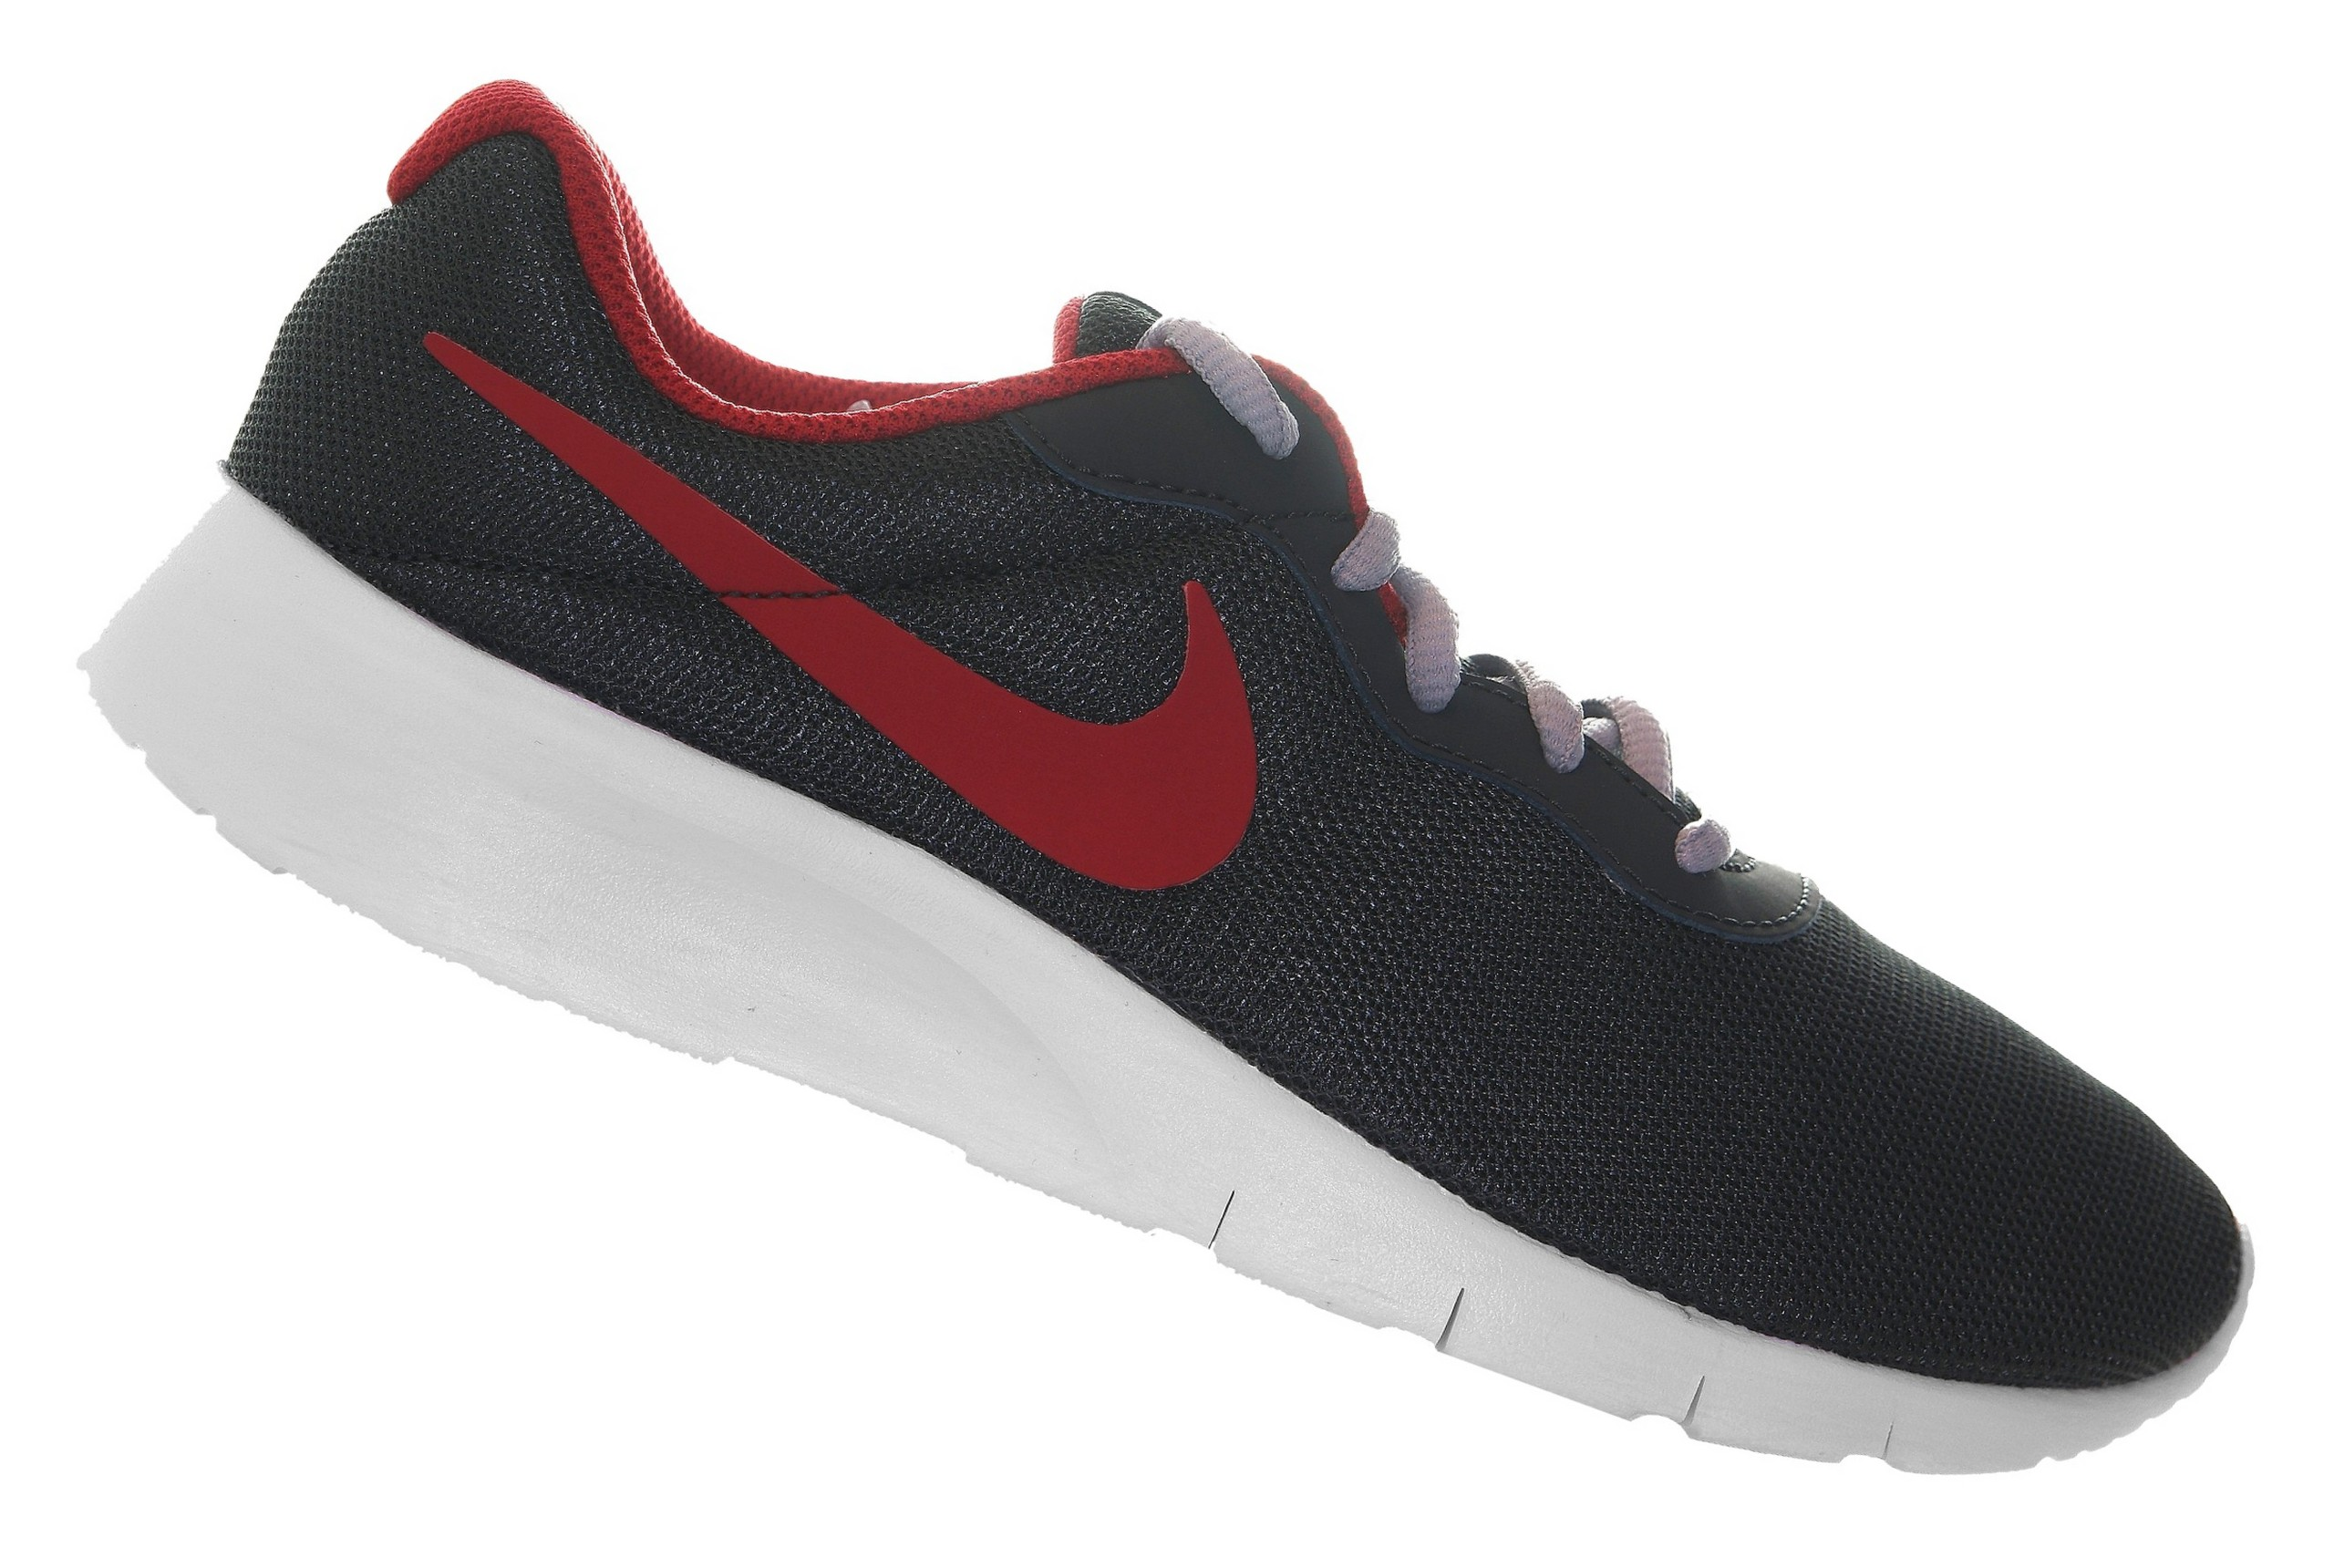 cheap for discount good quality newest collection Buty NIKE TANJUN GS 818381-004 rozmiar 39 - 6806808795 ...